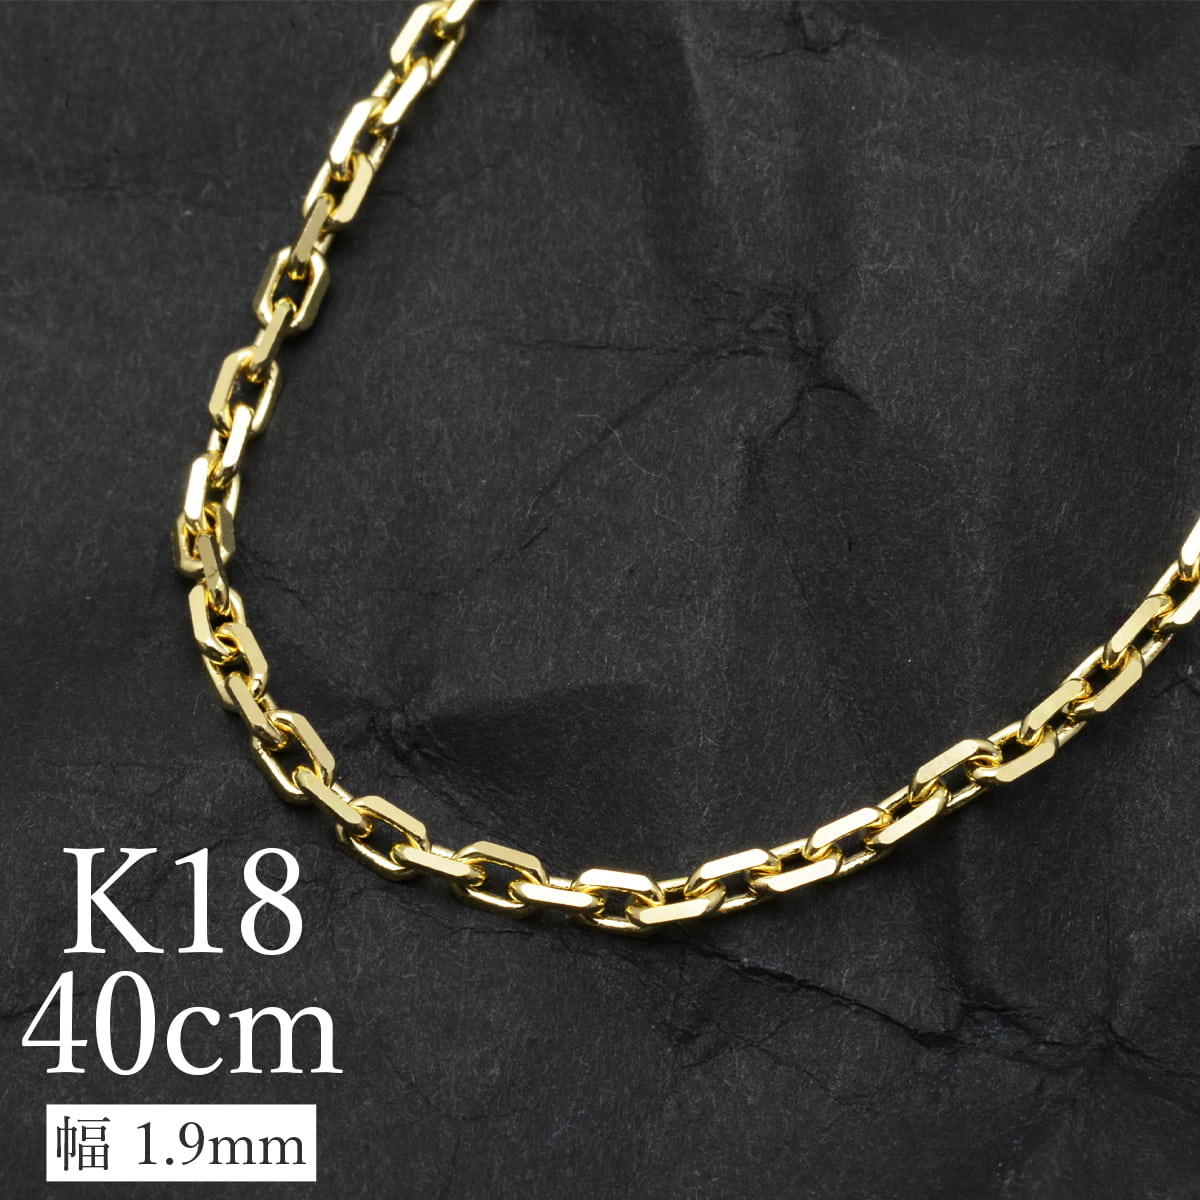 k18ネックレス K18 イエローゴールド メンズ 男性 カットアズキチェーン 幅1.9mm チェーン 40cm/ プレゼント ギフト gold necklace ach1662c40